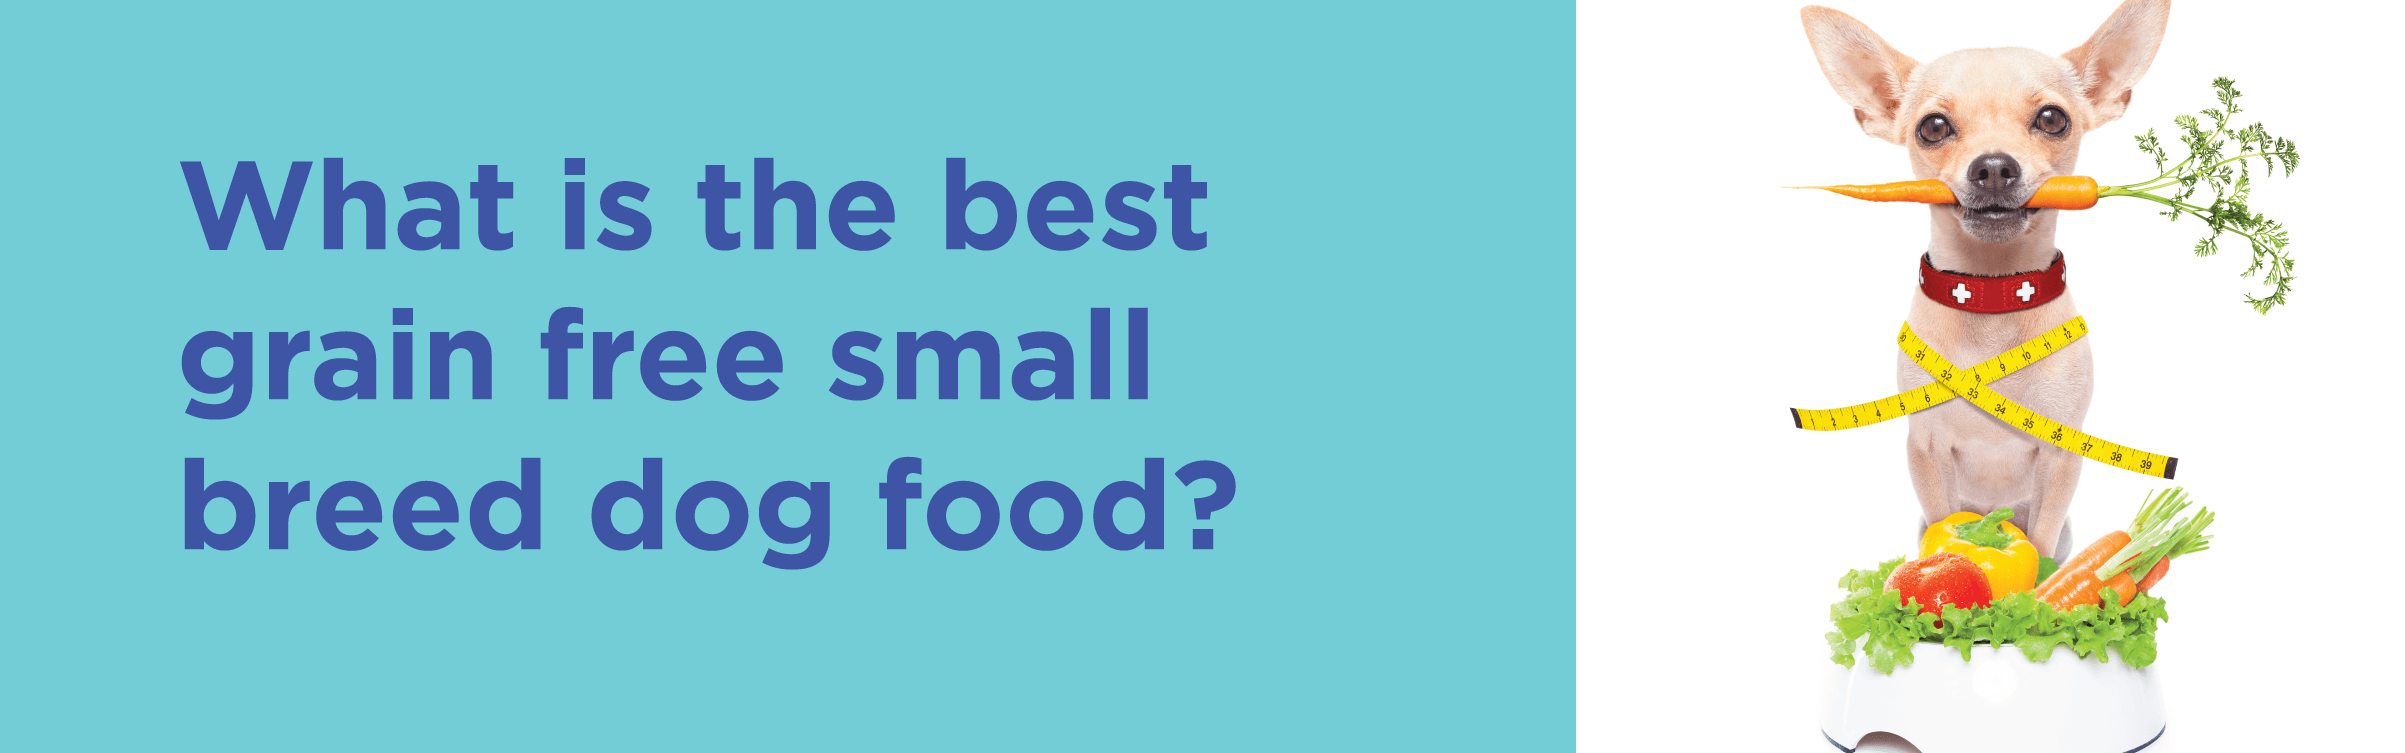 What is the best grain free small breed dog food?